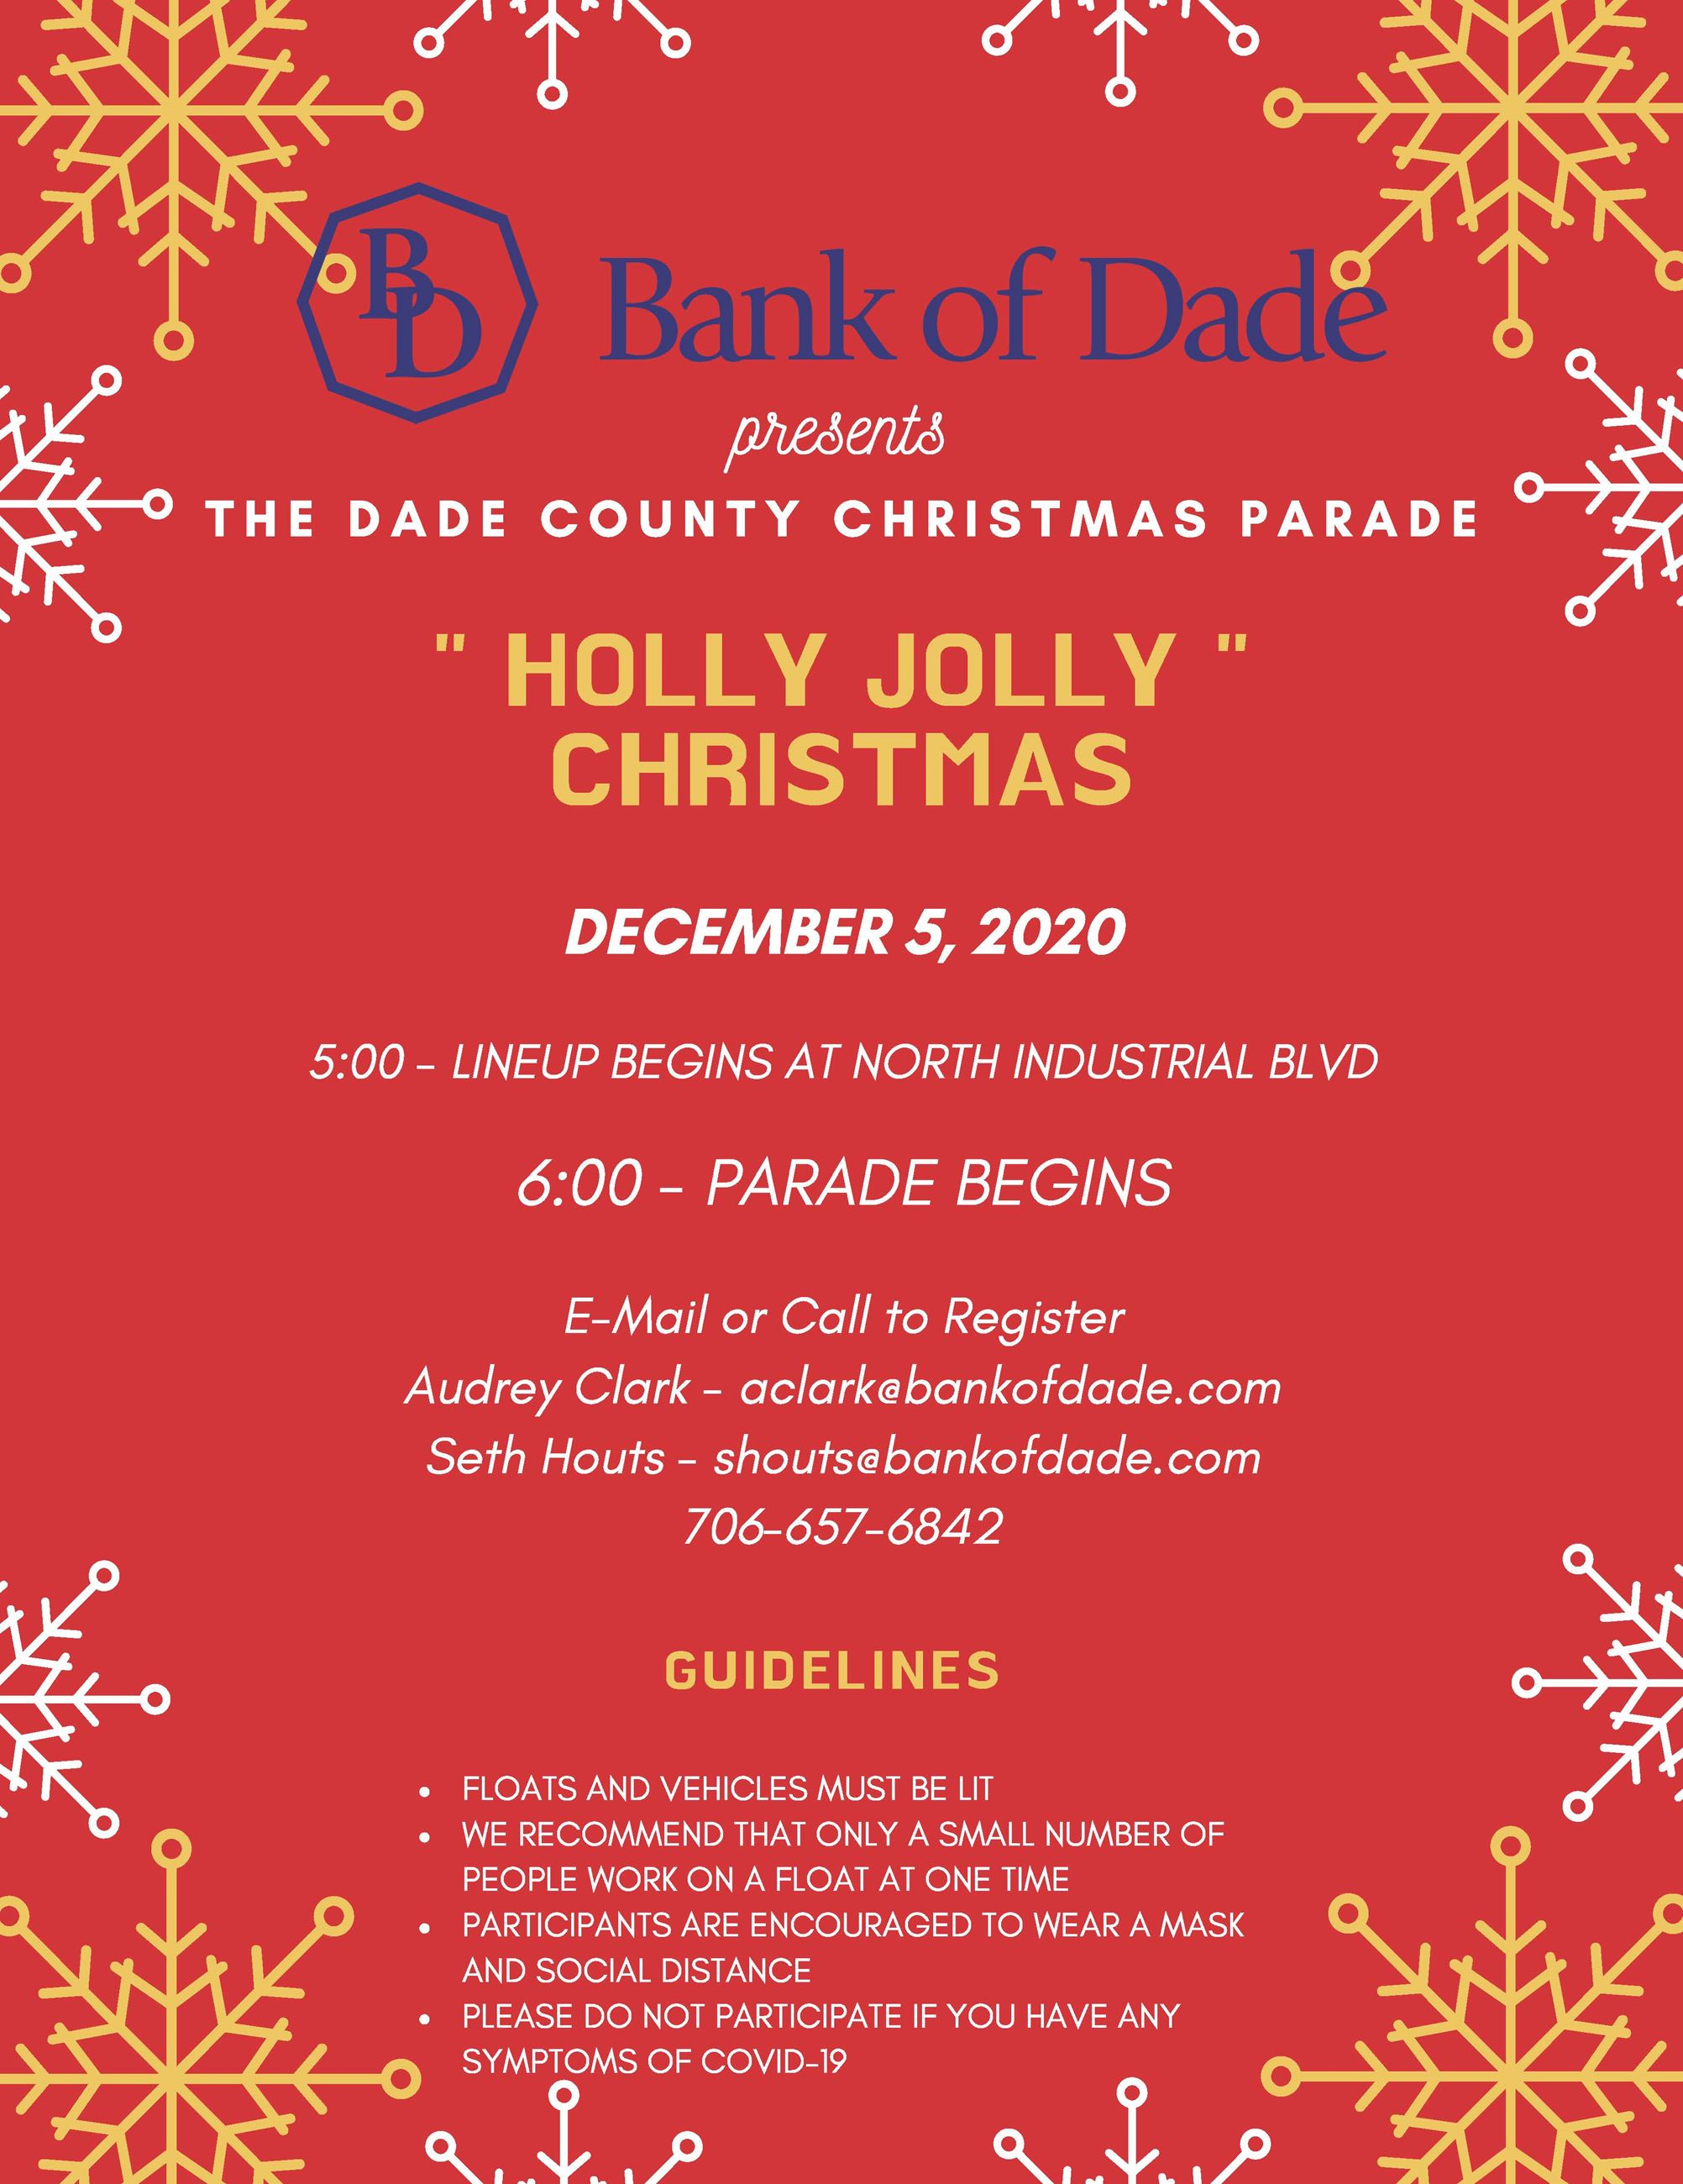 2020 Christmas Parade Flyer Bank of Dade